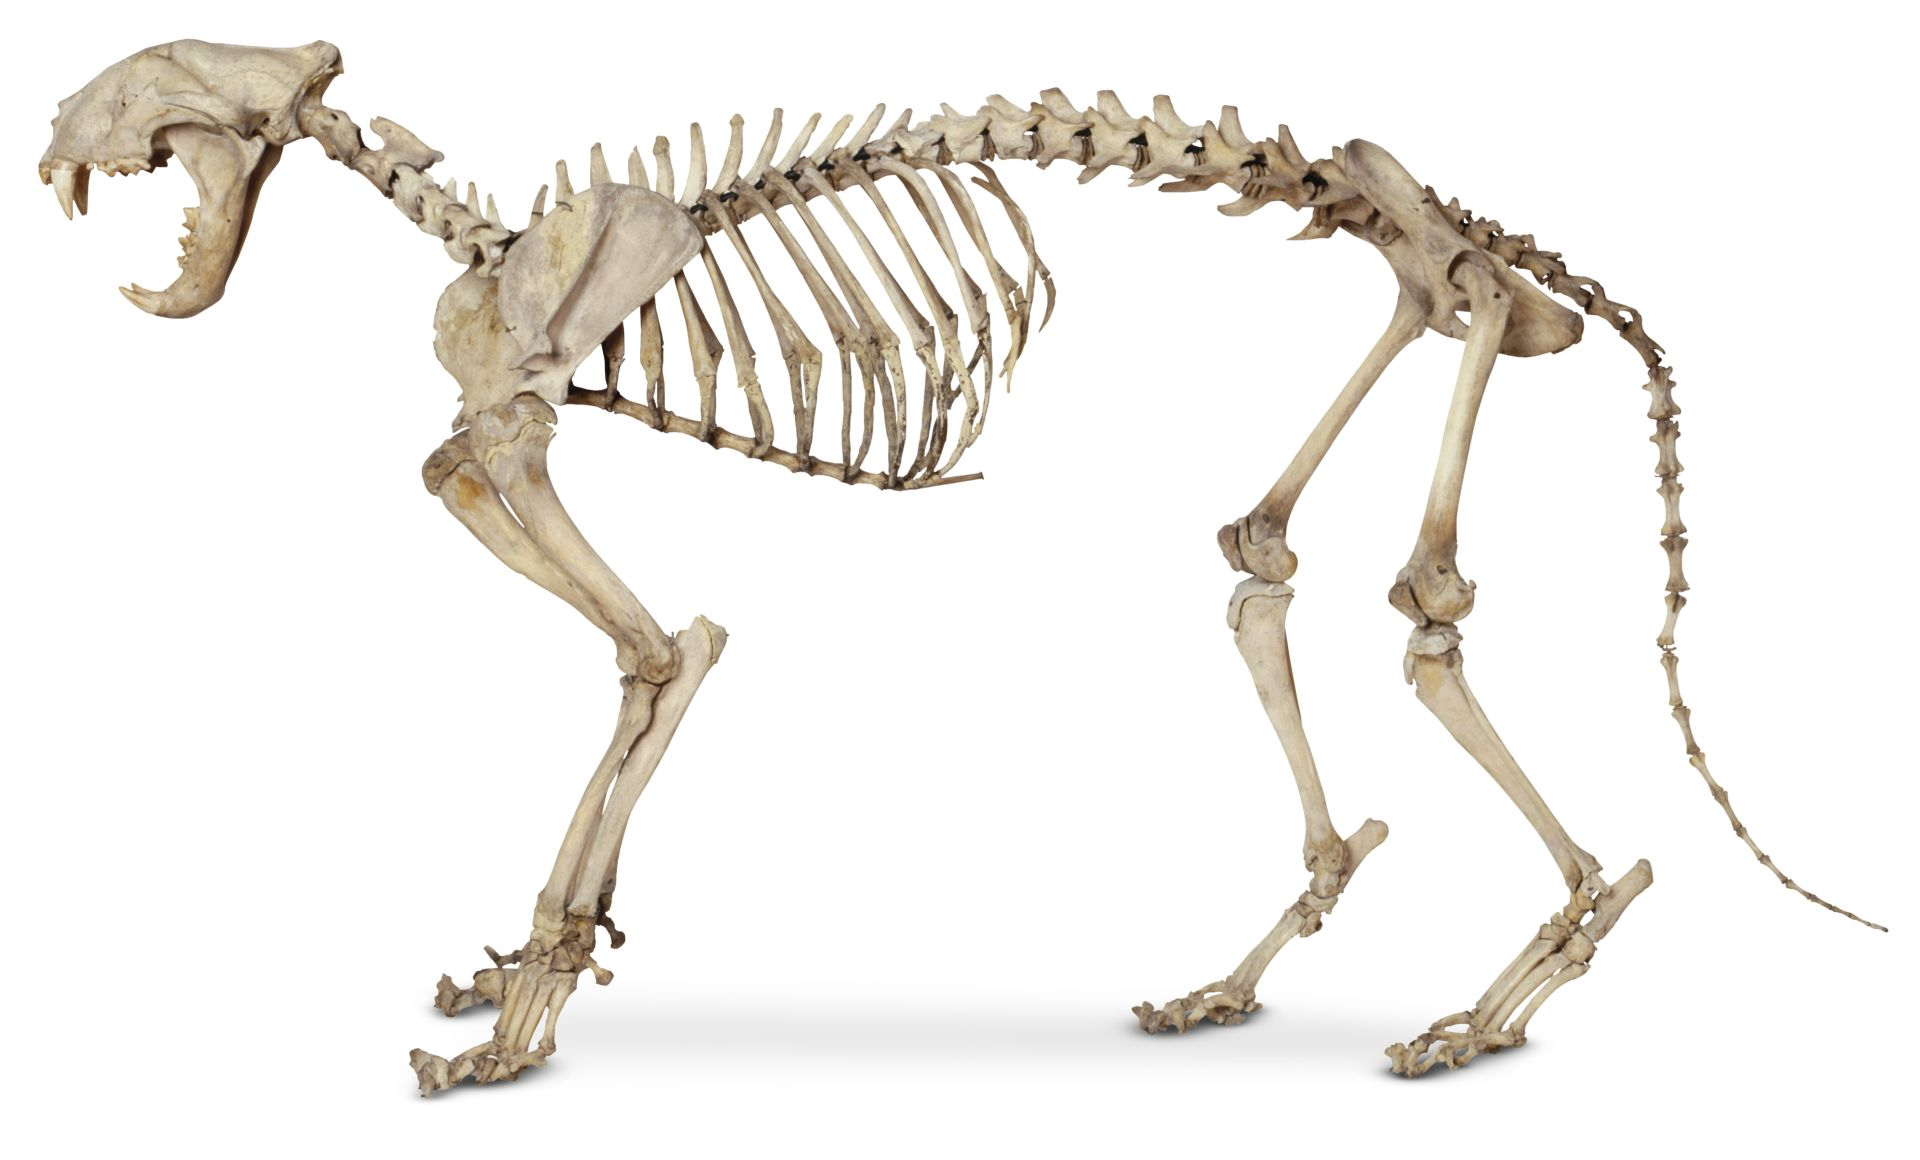 Cat Anatomy | Cat Skeleton | DK Find Out